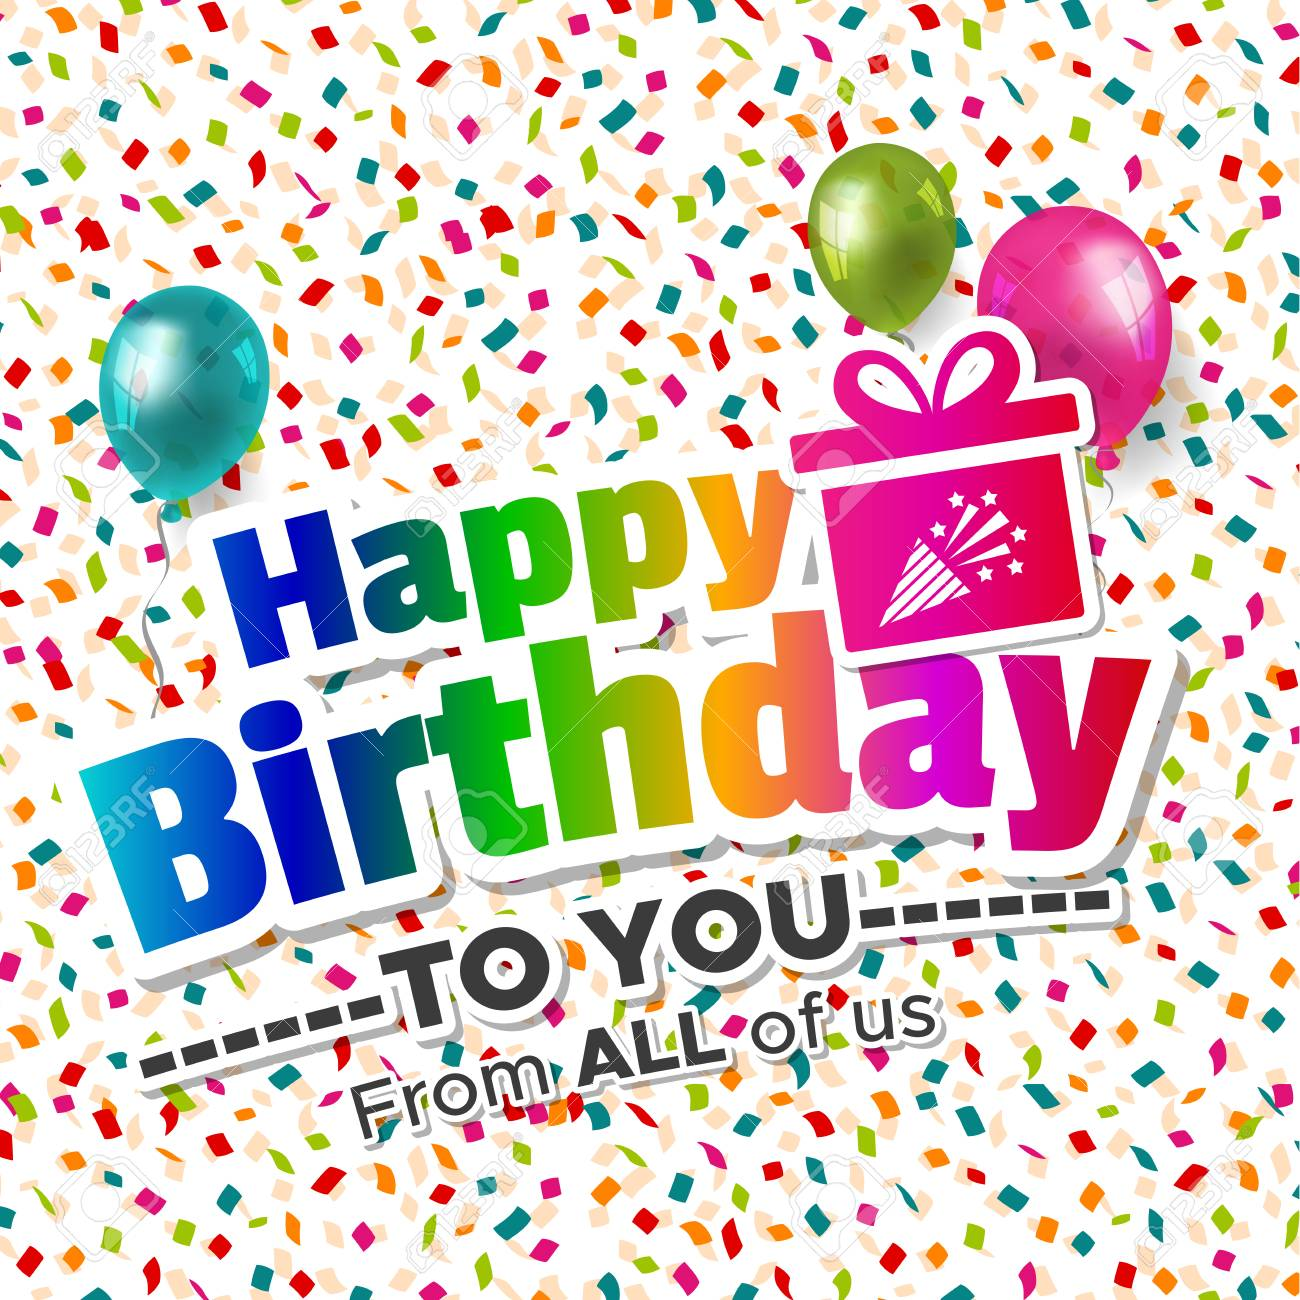 Miraculous Happy Birthday To You From All Of Us Card Royalty Free Cliparts Personalised Birthday Cards Bromeletsinfo